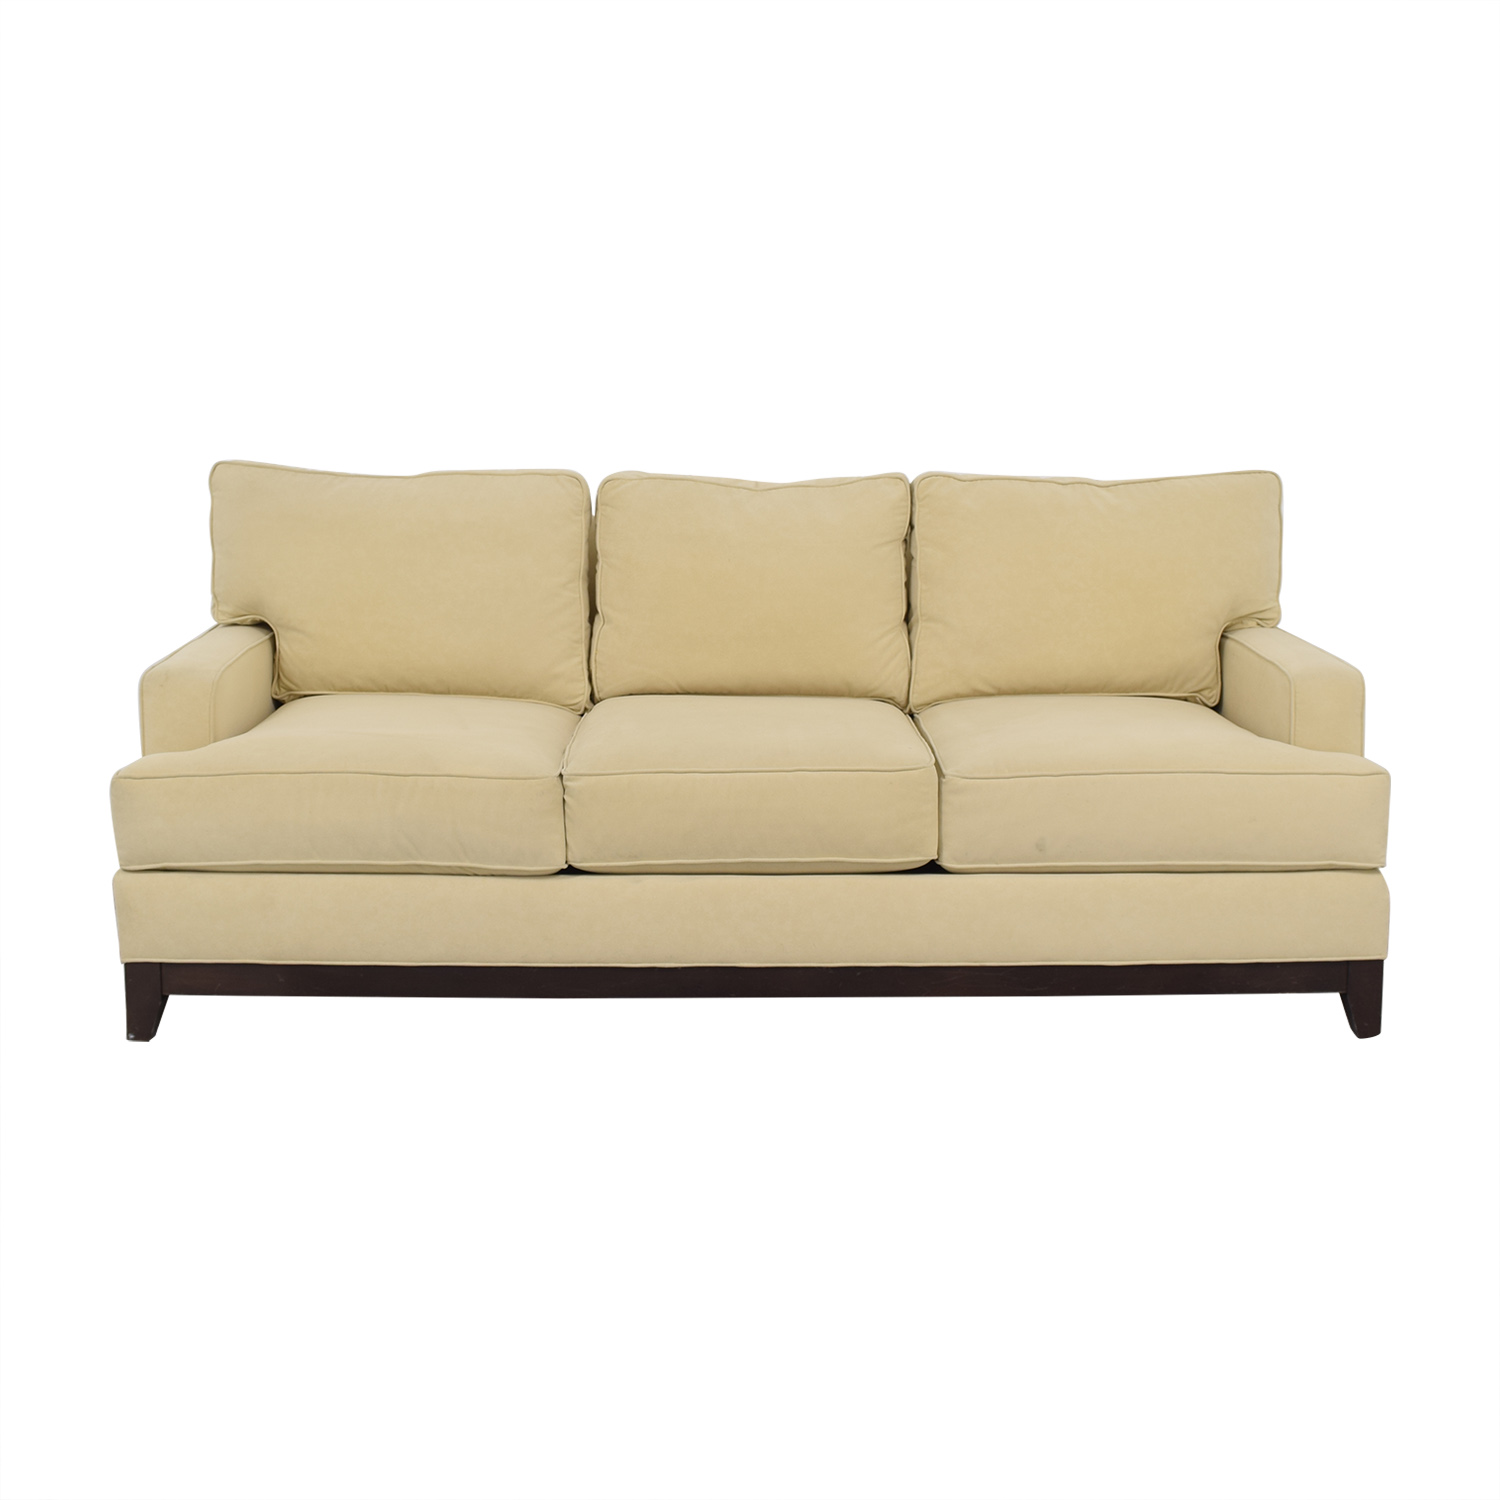 Ethan Allen Ethan Allen Three Cushion Sofa Classic Sofas